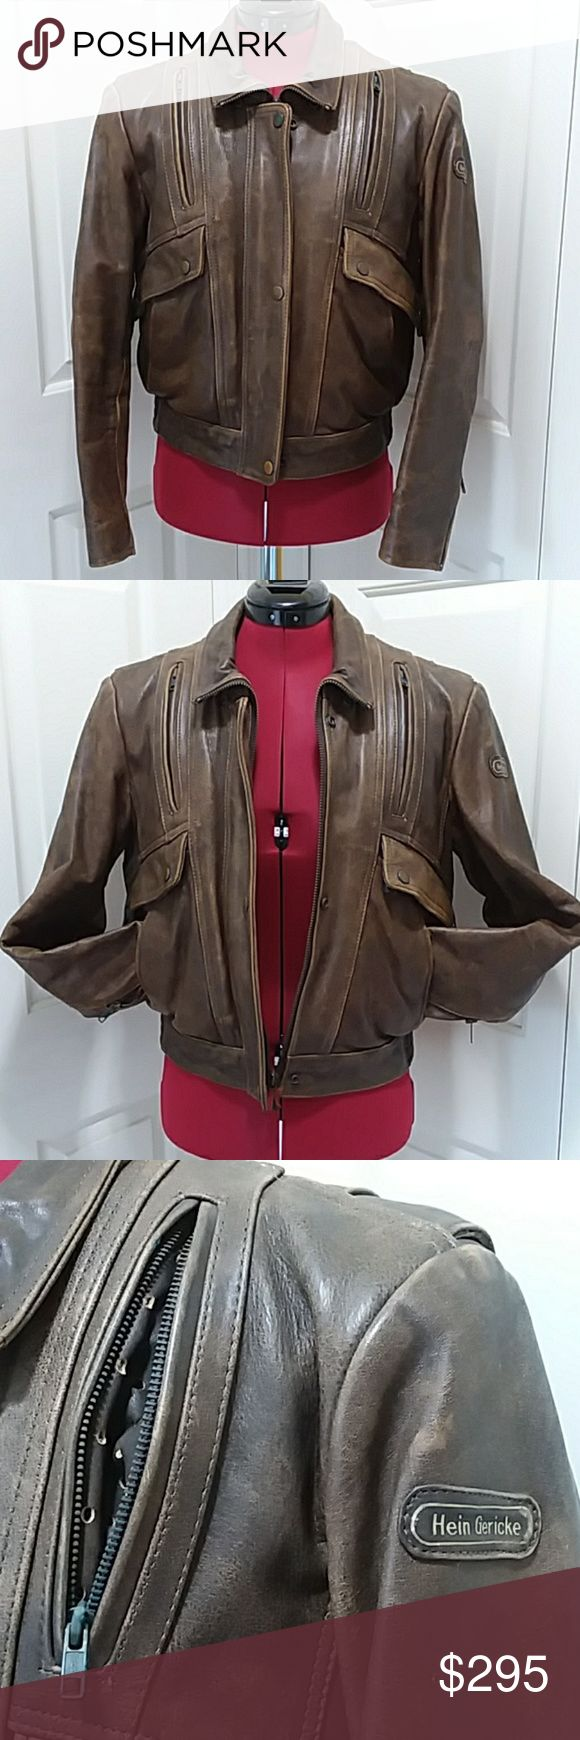 VINTAGE Hein Gericke brown leather moto jacket 36W